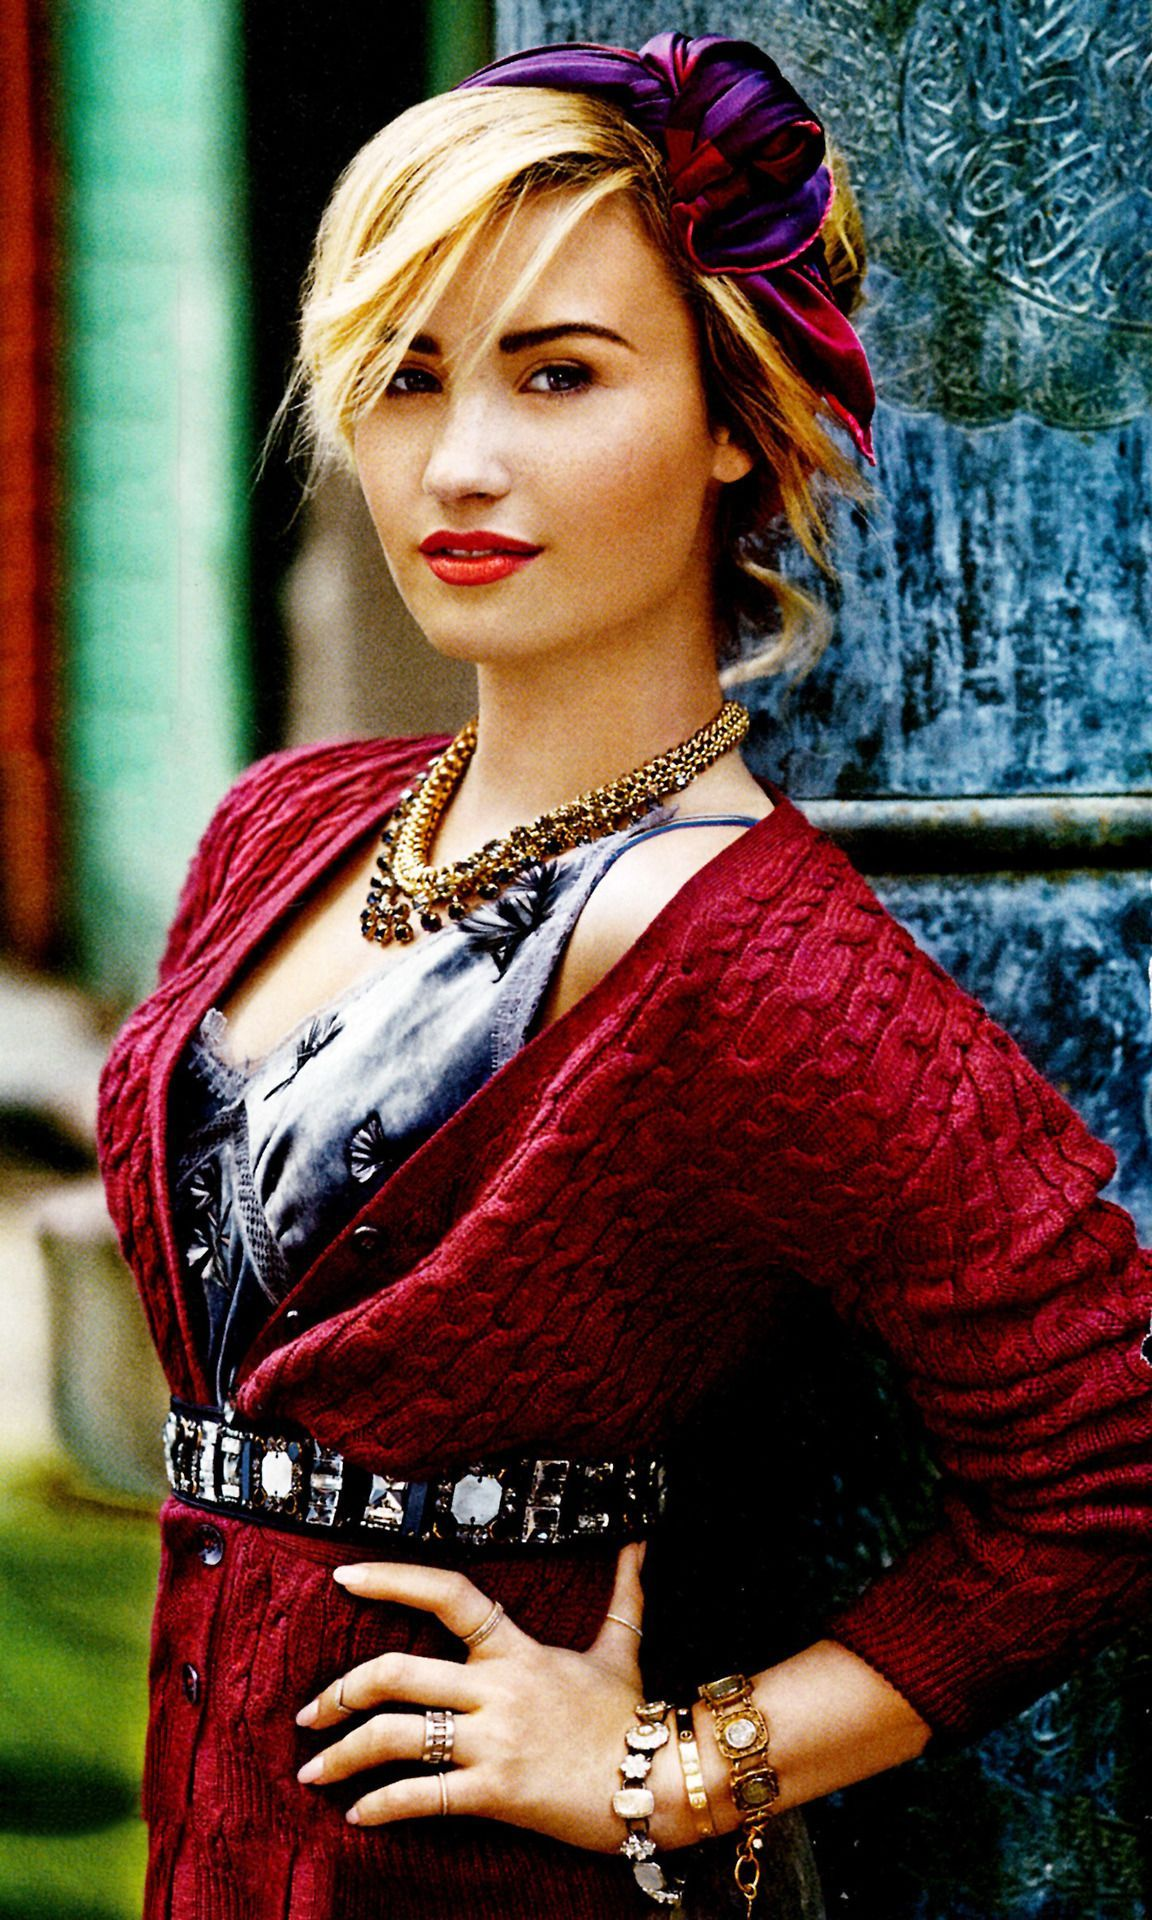 DEMI LOVATO. She looks sooooo much like Kate Winslet in this photo! Freaky, right? Well sort of.